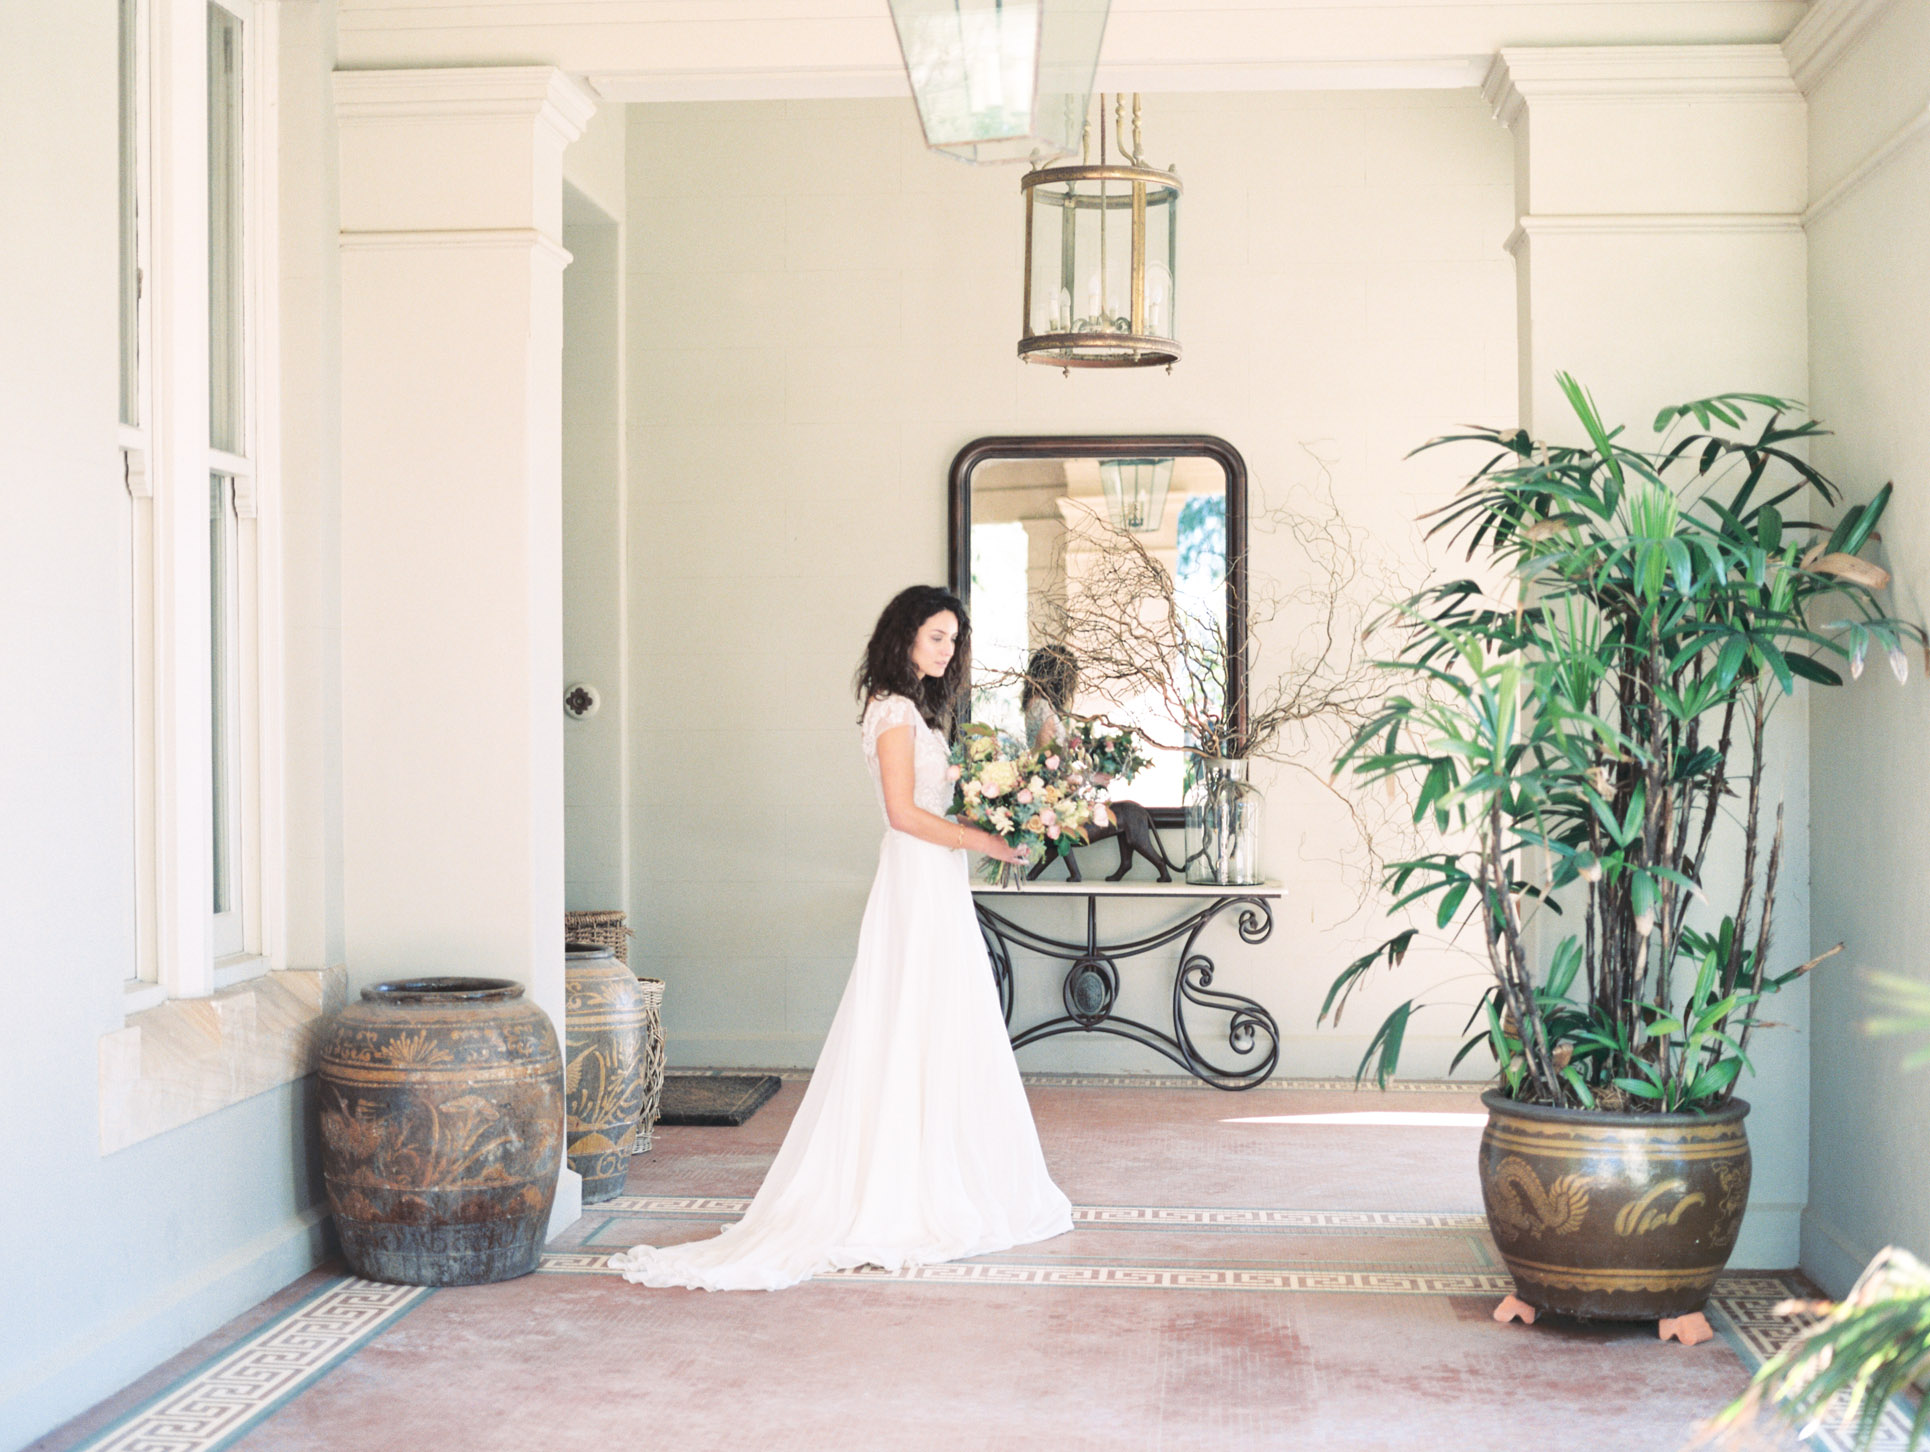 Hopewood House - Romantic Winter Wedding Shoot - Lilli Kad Photography - Shot - Residence Verandah.jpeg